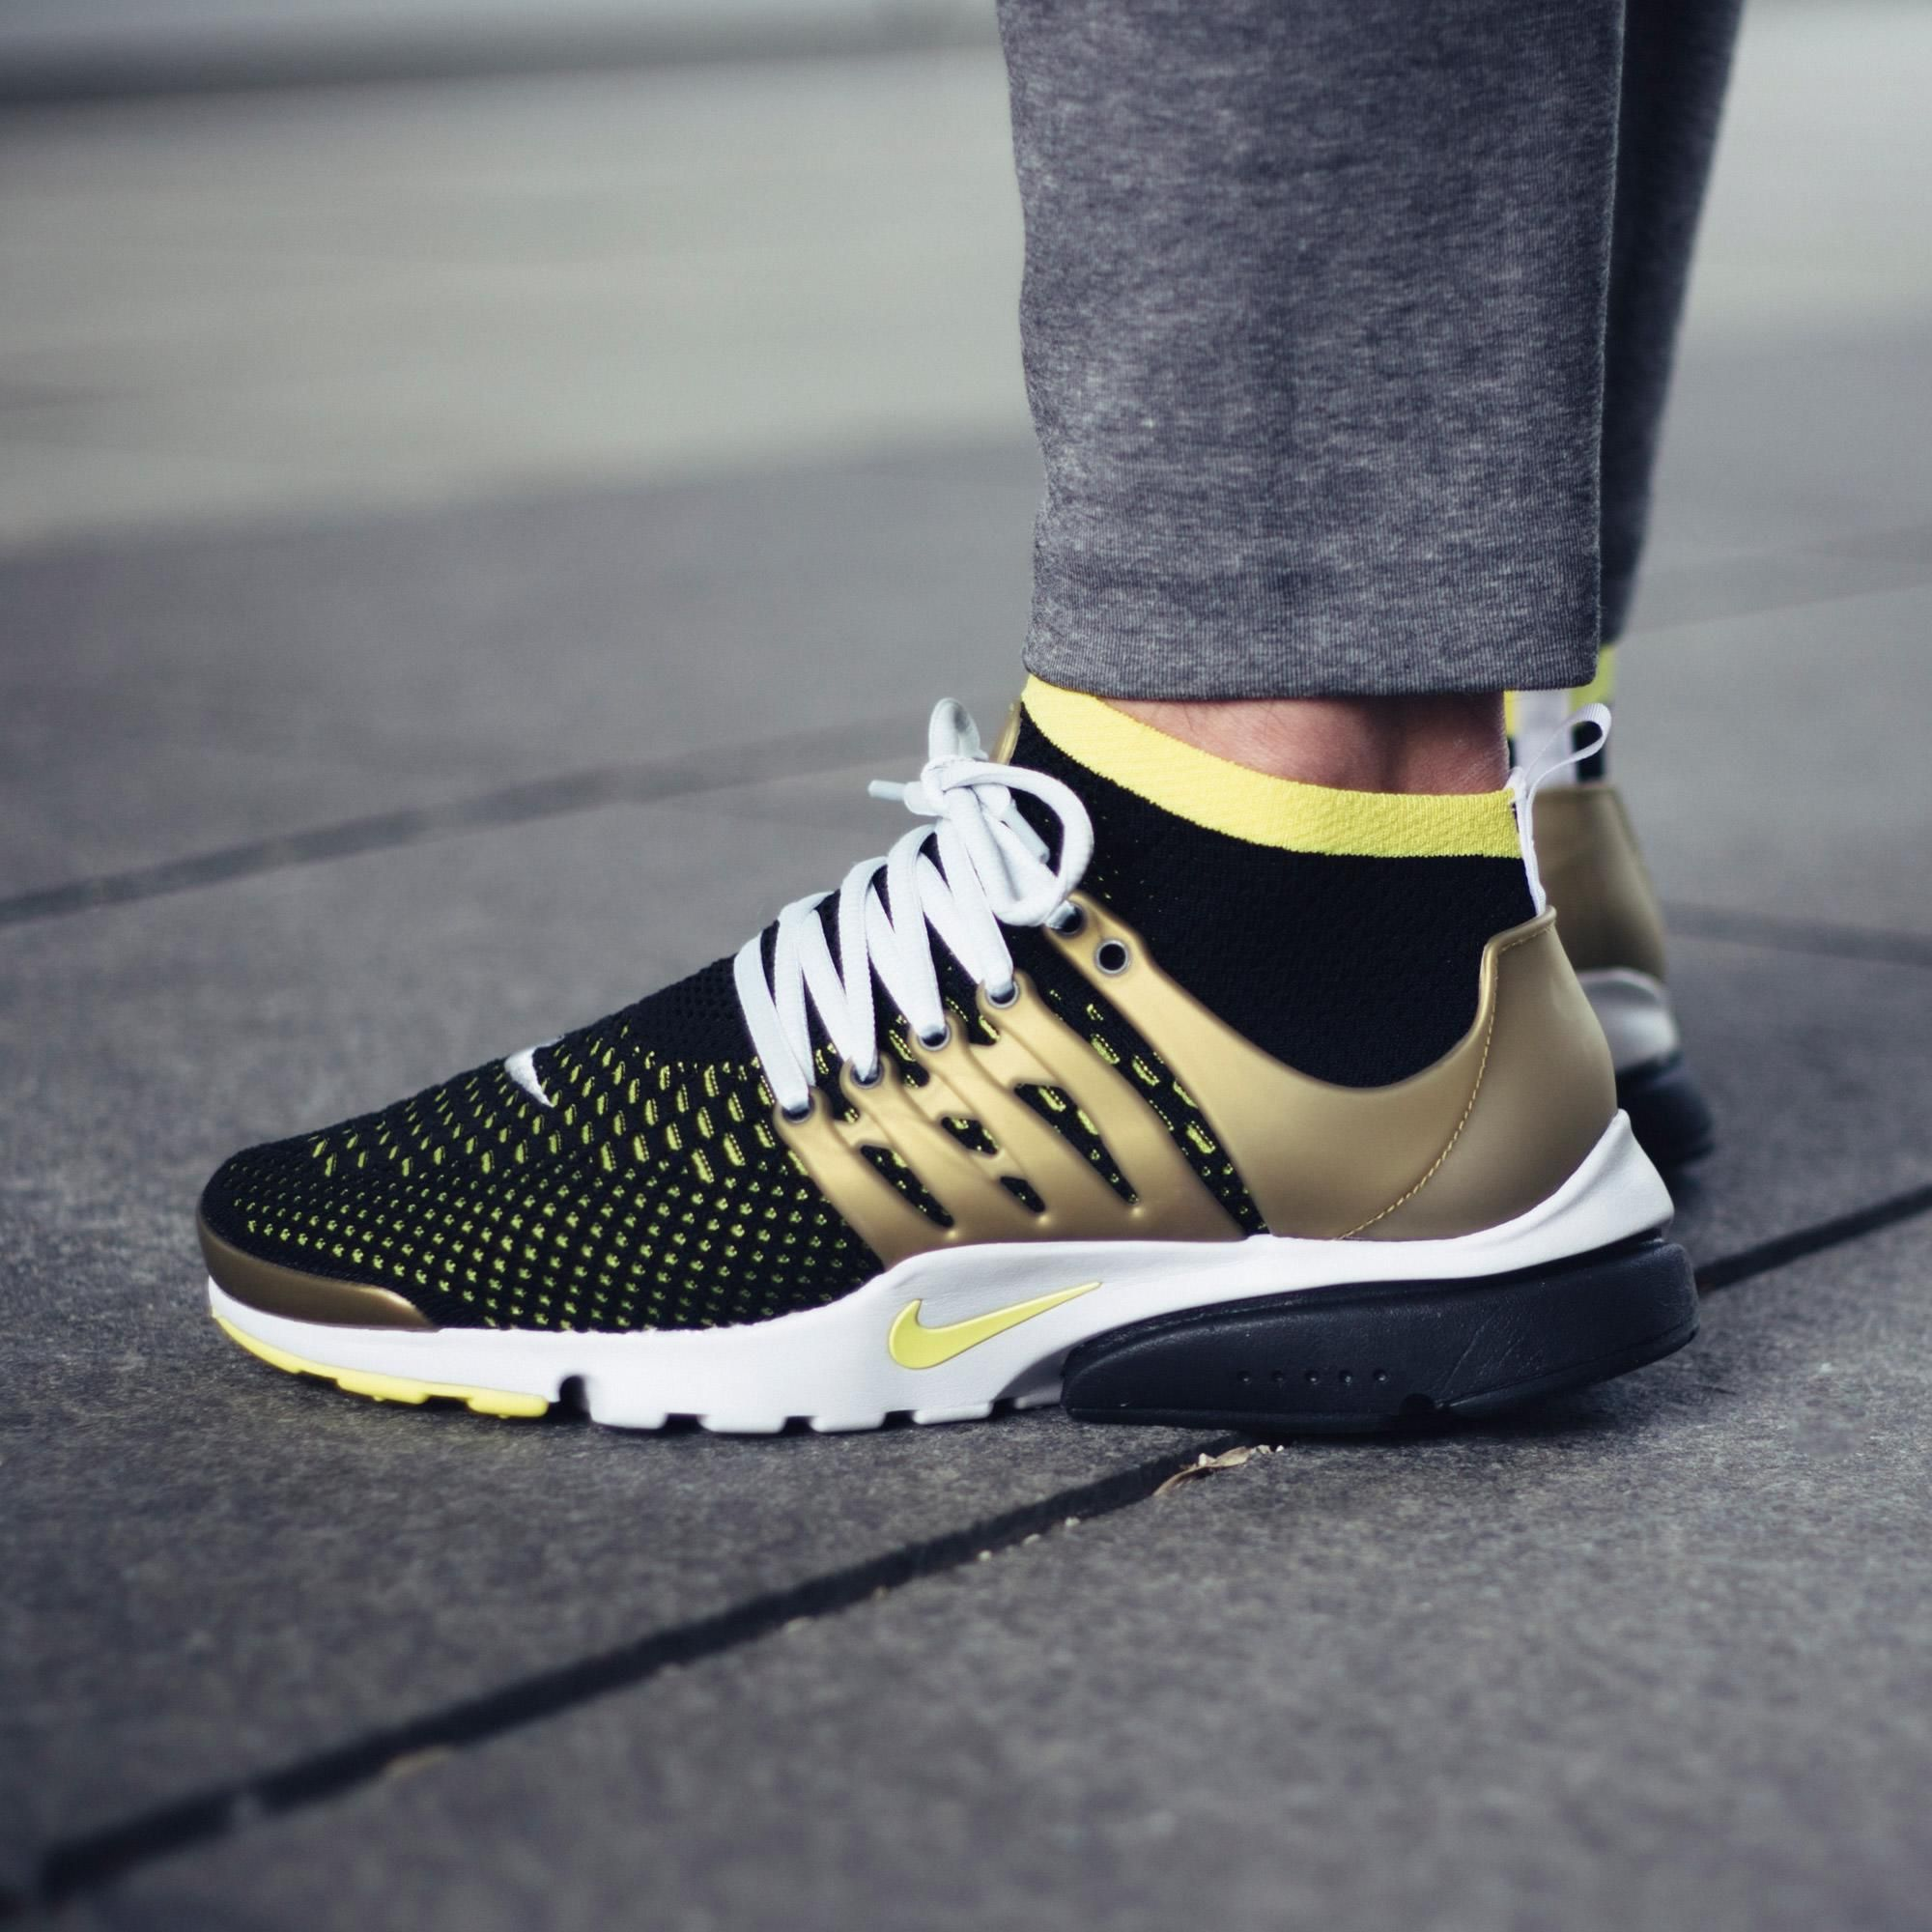 4c812320fcc3 Another Look At The Nike Air Presto Flyknit Ultra Black   Yellow   Gold